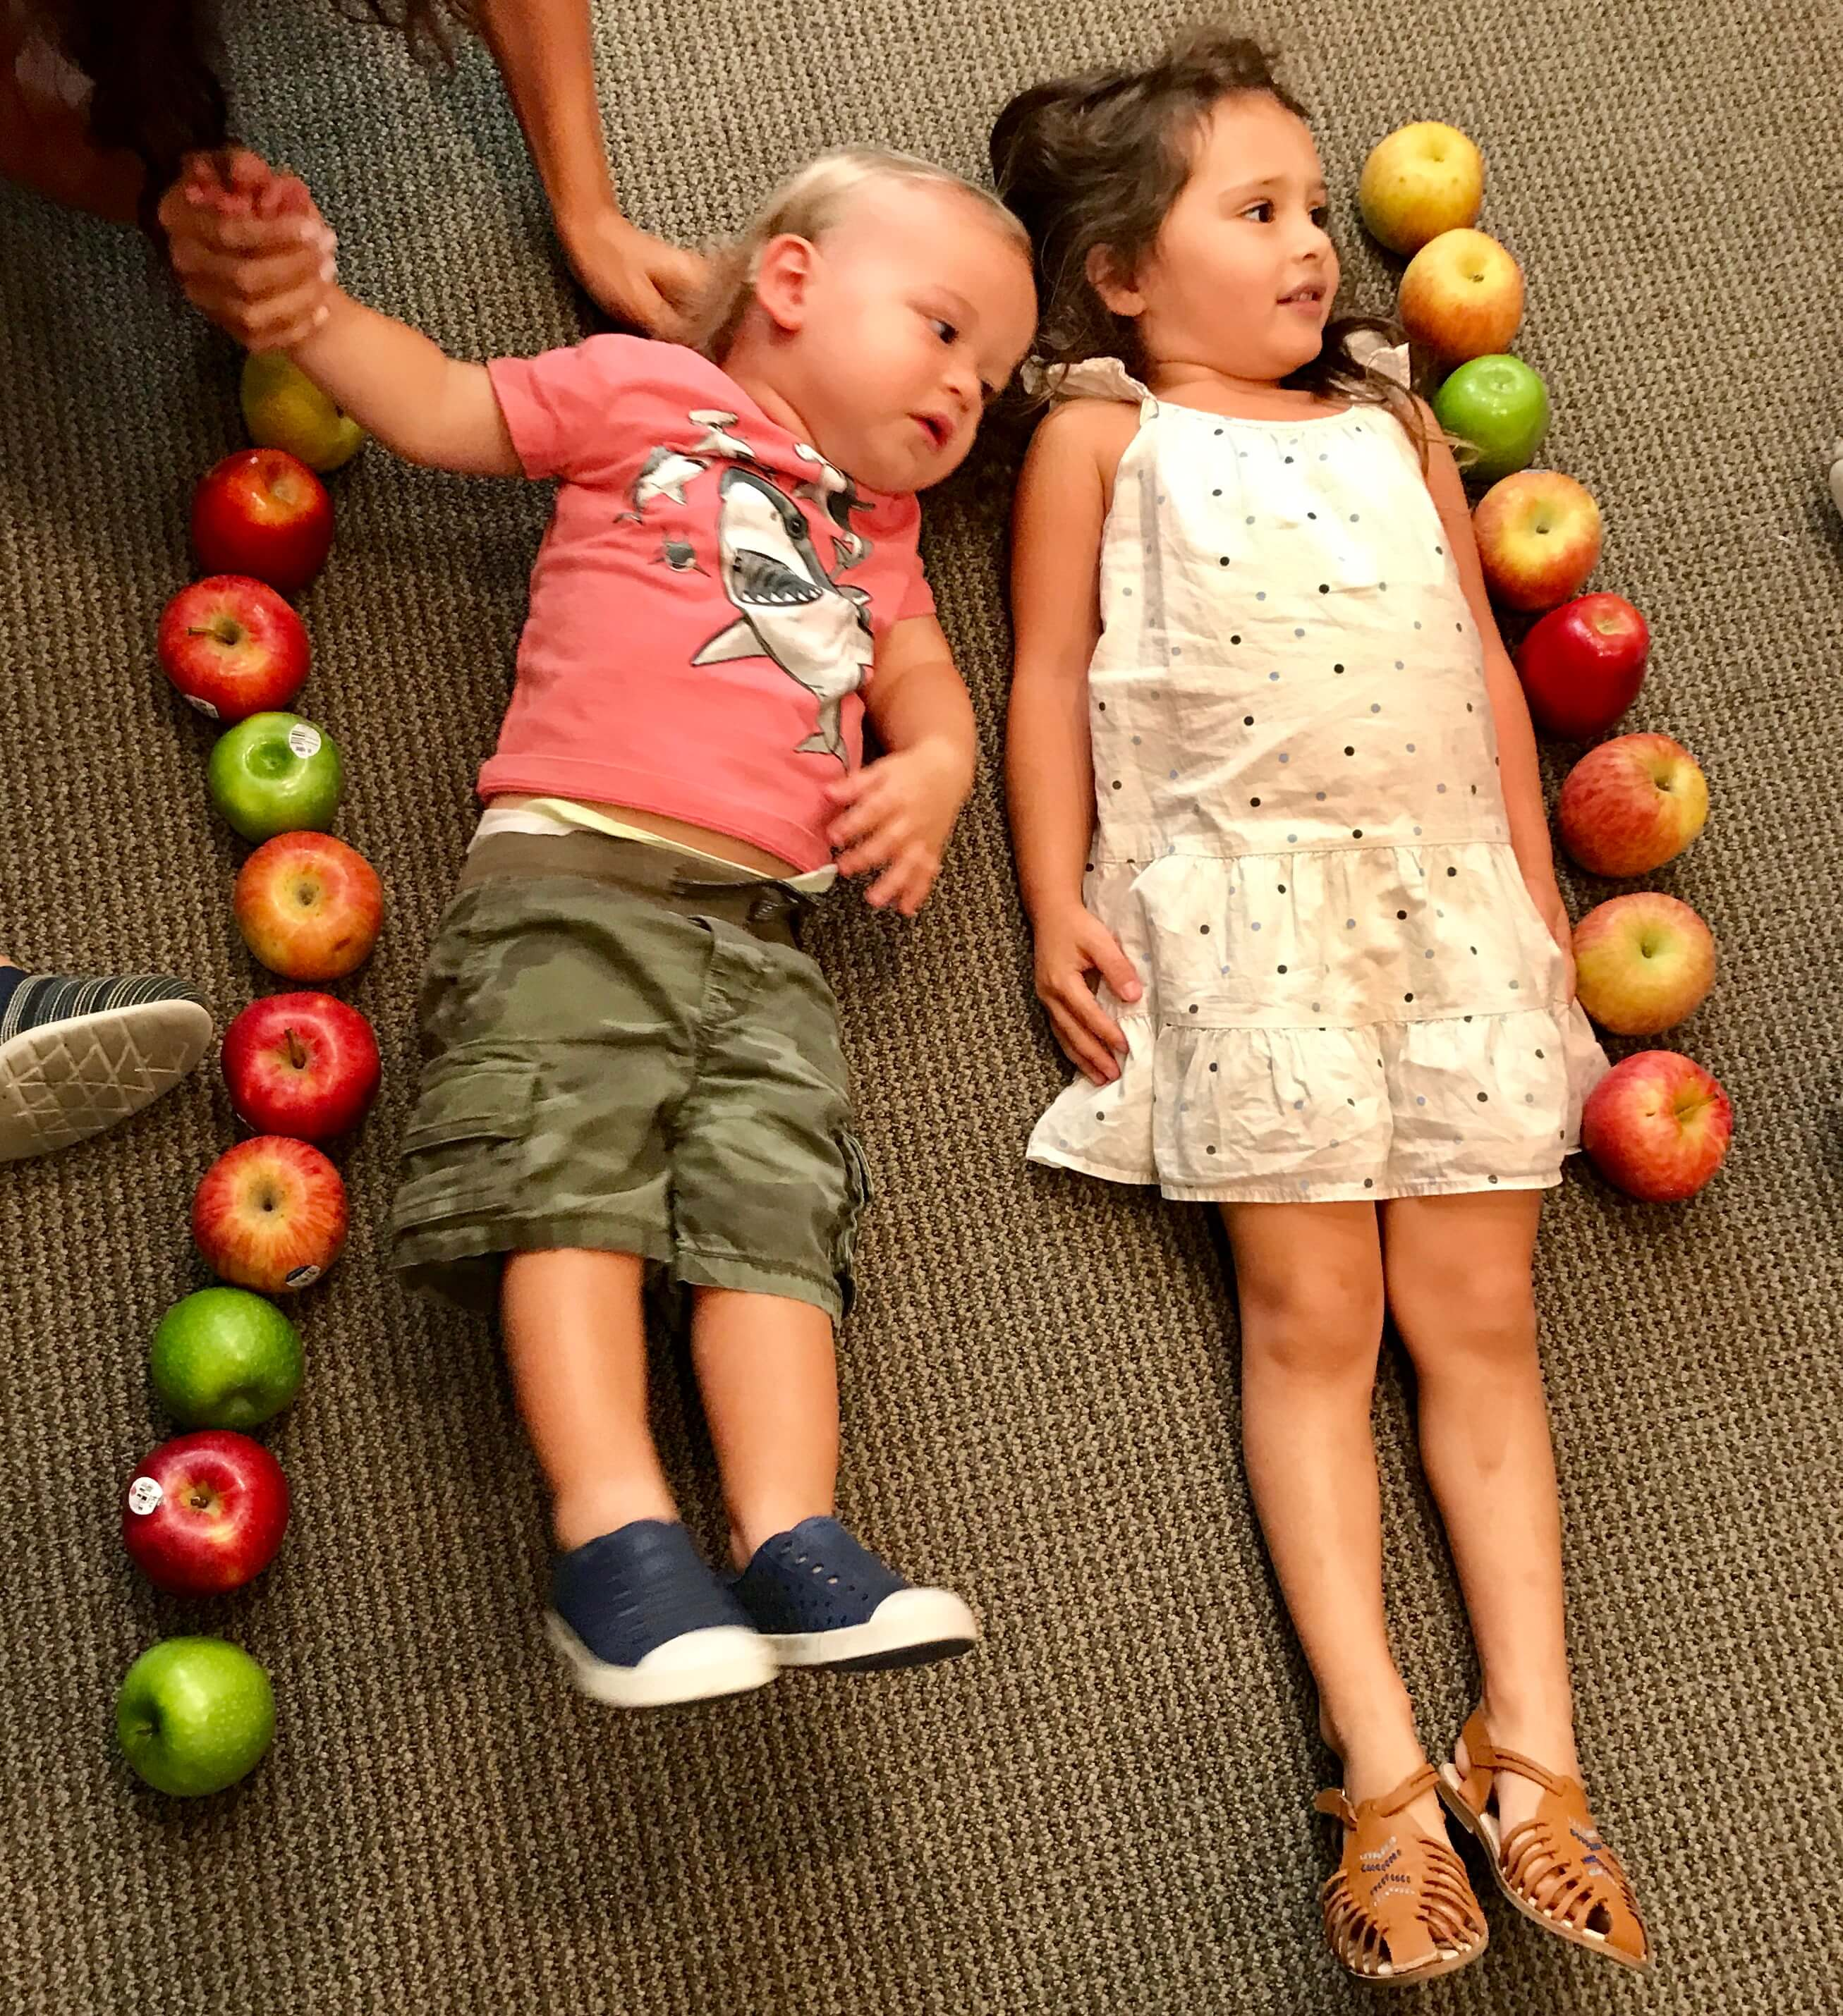 2 toddlers luong on the floor with apples beside them in the form of a line to measure their height with the apples at ECDA